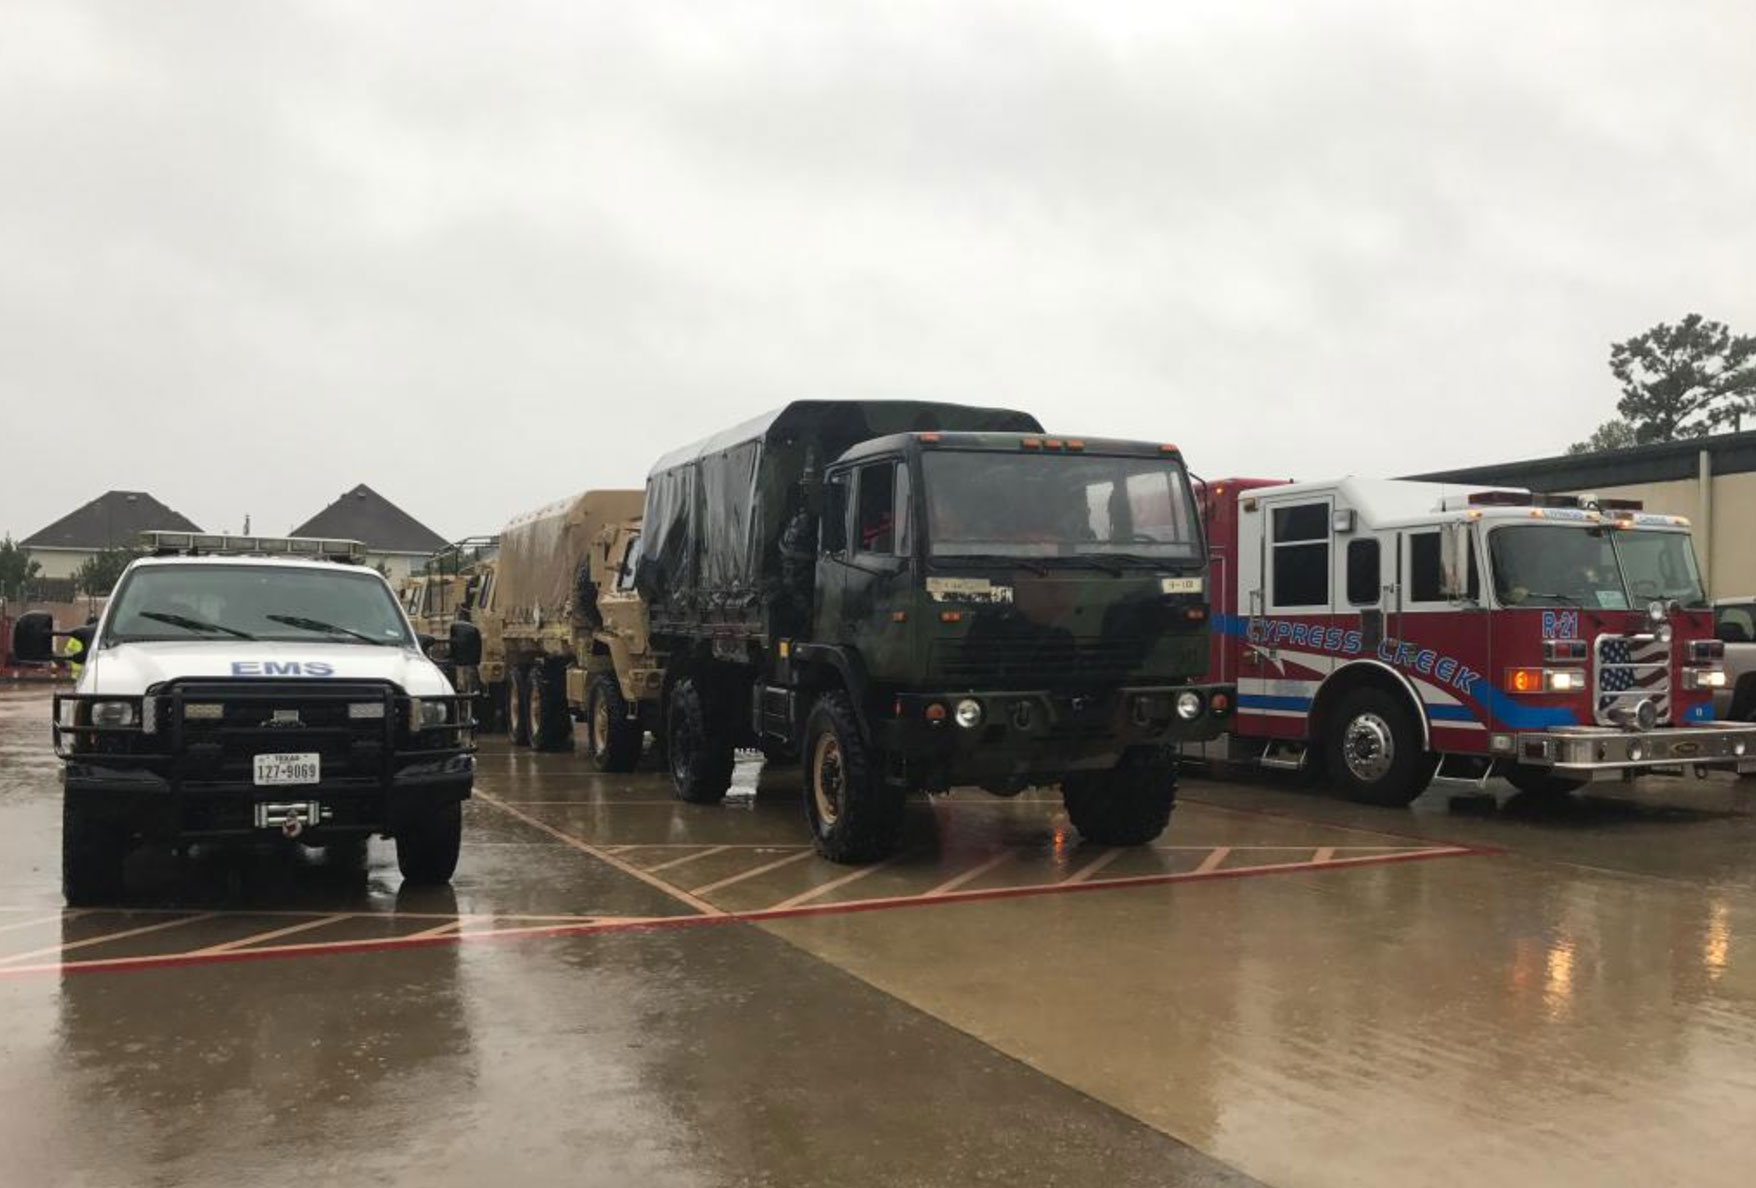 "<div class=""meta image-caption""><div class=""origin-logo origin-image none""><span>none</span></div><span class=""caption-text"">''#PhotosFromtheField: One team, one mission. #TMDHarvey #Harvey,'' the Texas Military Department posted on Twitter. (TXMilitary/Twitter)</span></div>"